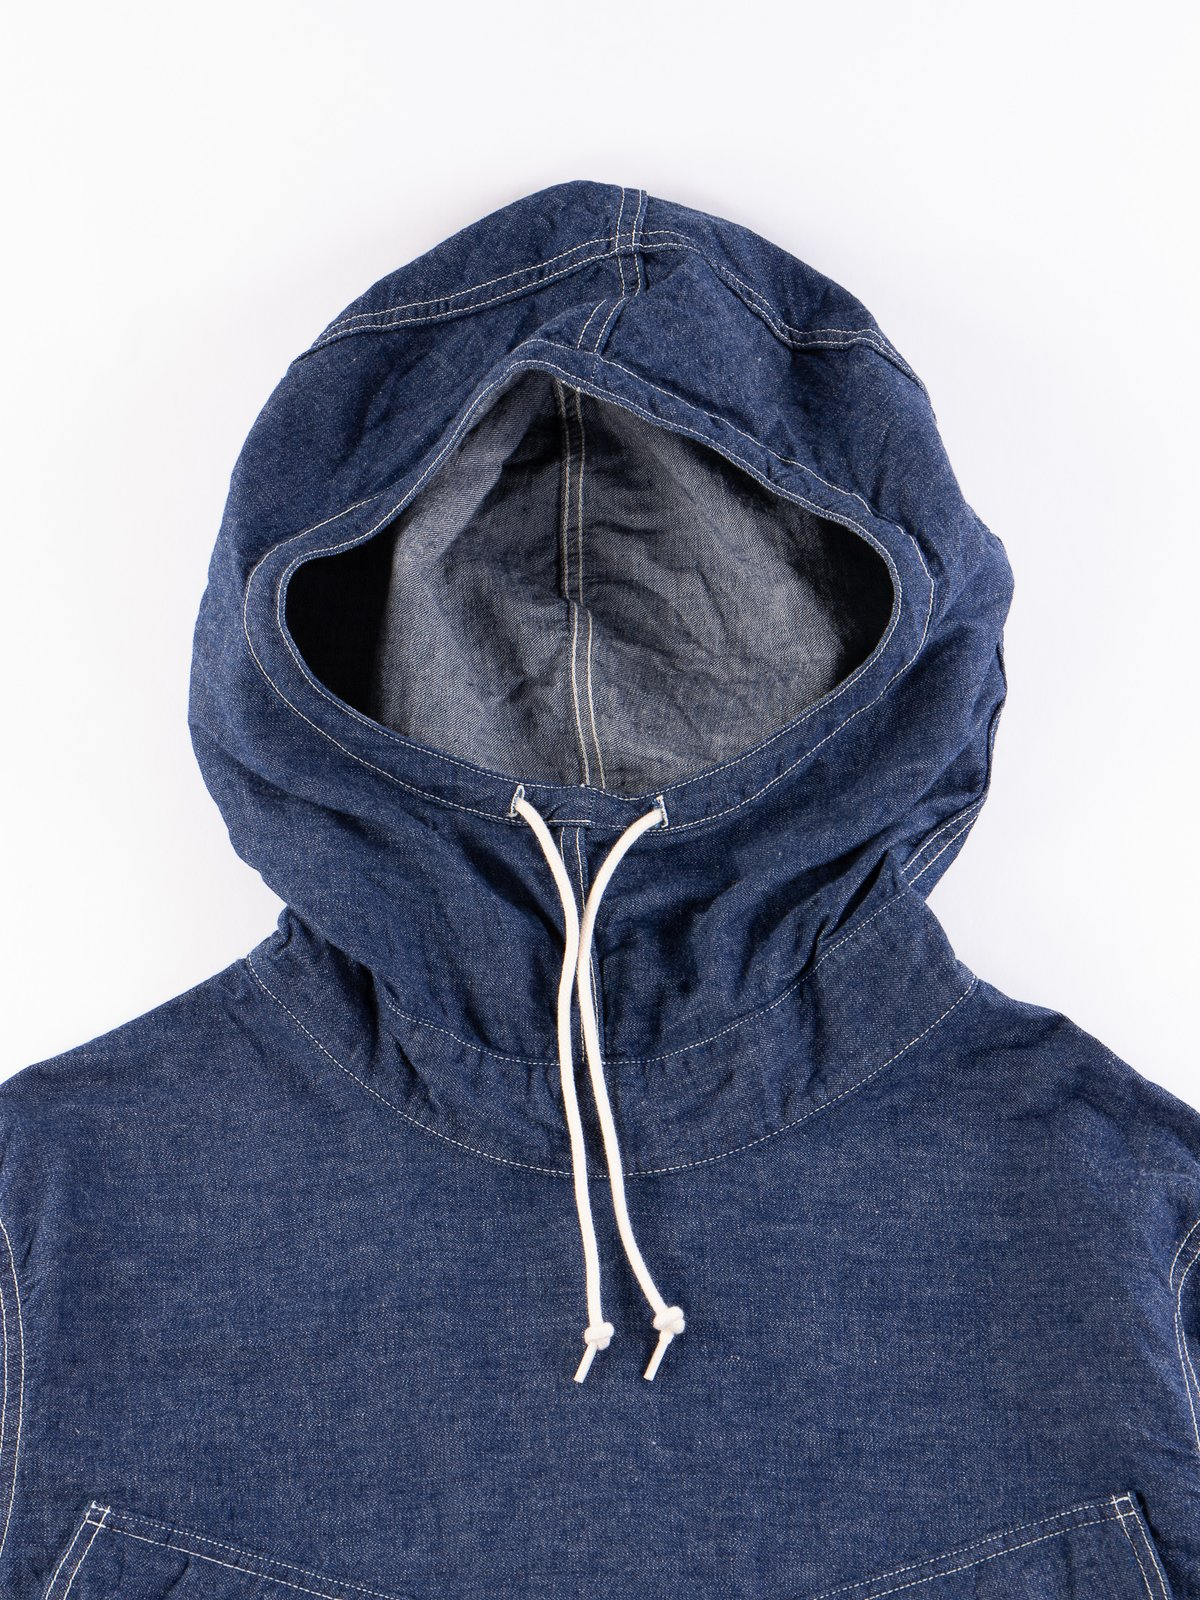 One Wash US Navy Salvage Hooded Parka - Image 3